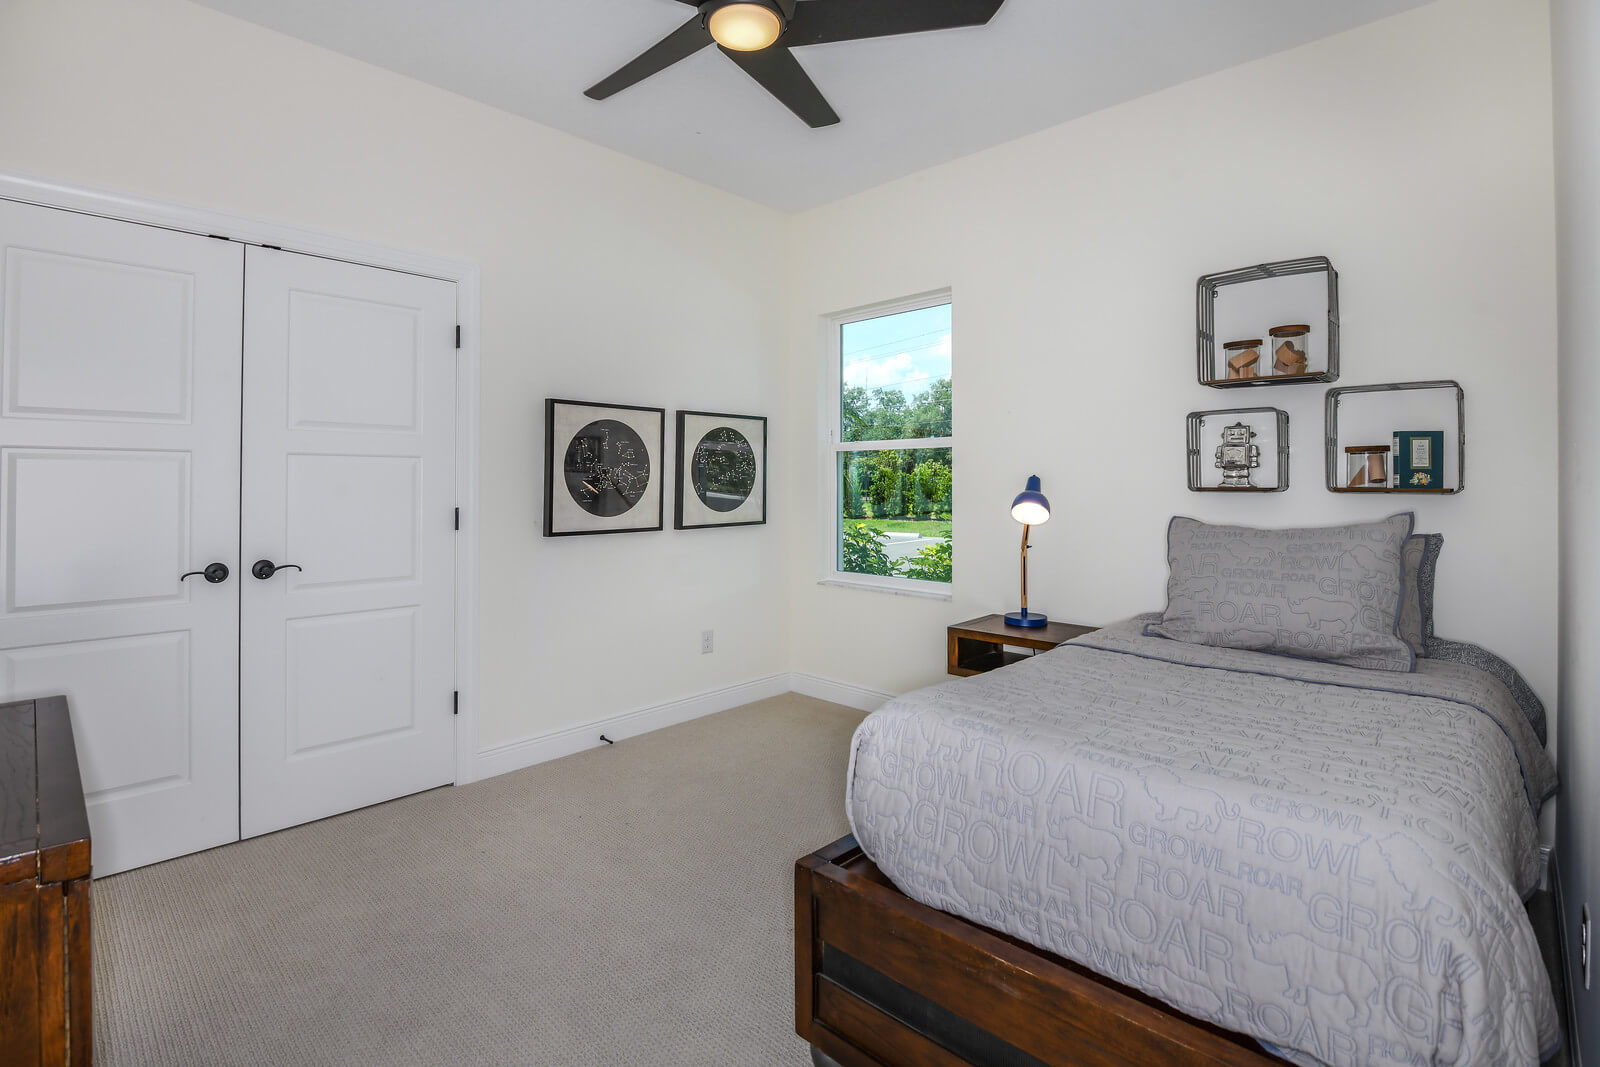 New Tampa Single Family Home Quick Possession Camden in Worthington, located at 4613 Antrim Drive, Sarasota, FL 34240 Built By Cardel Homes Tampa